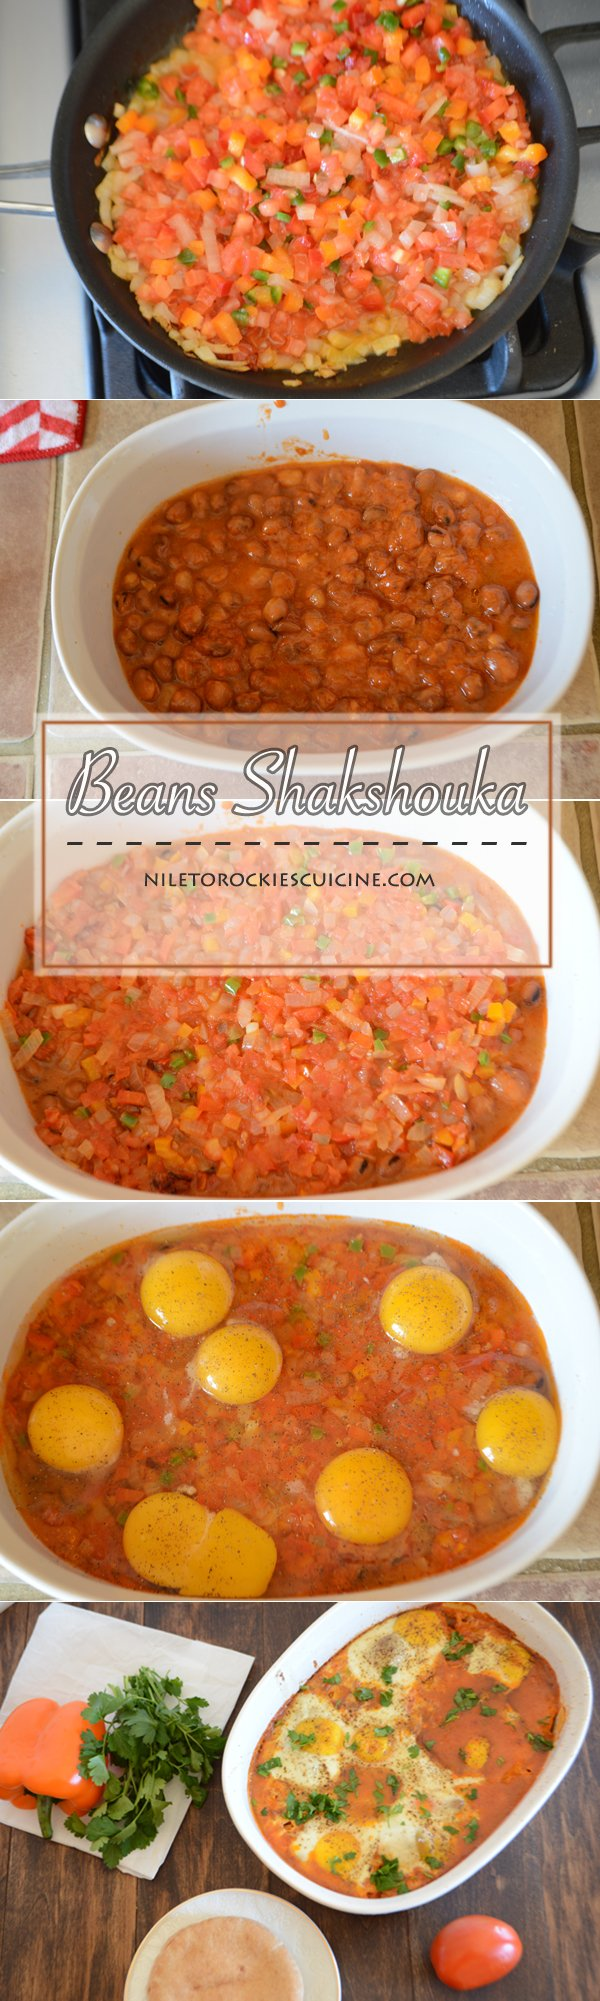 An infograph for Shakshouka recipe